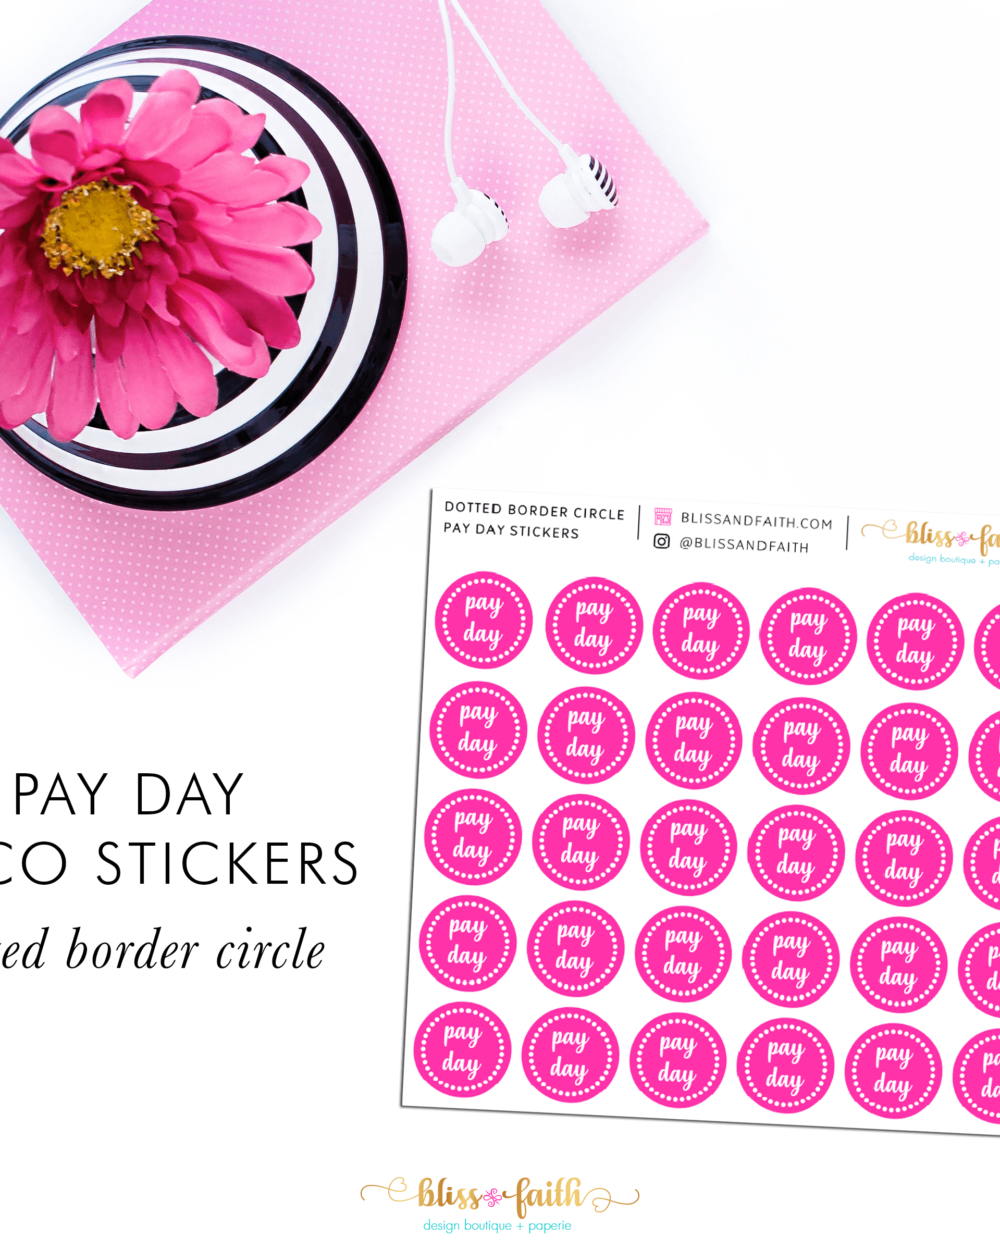 Pay Day Deco Sticker_DottedBorder | BlissandFaith.com